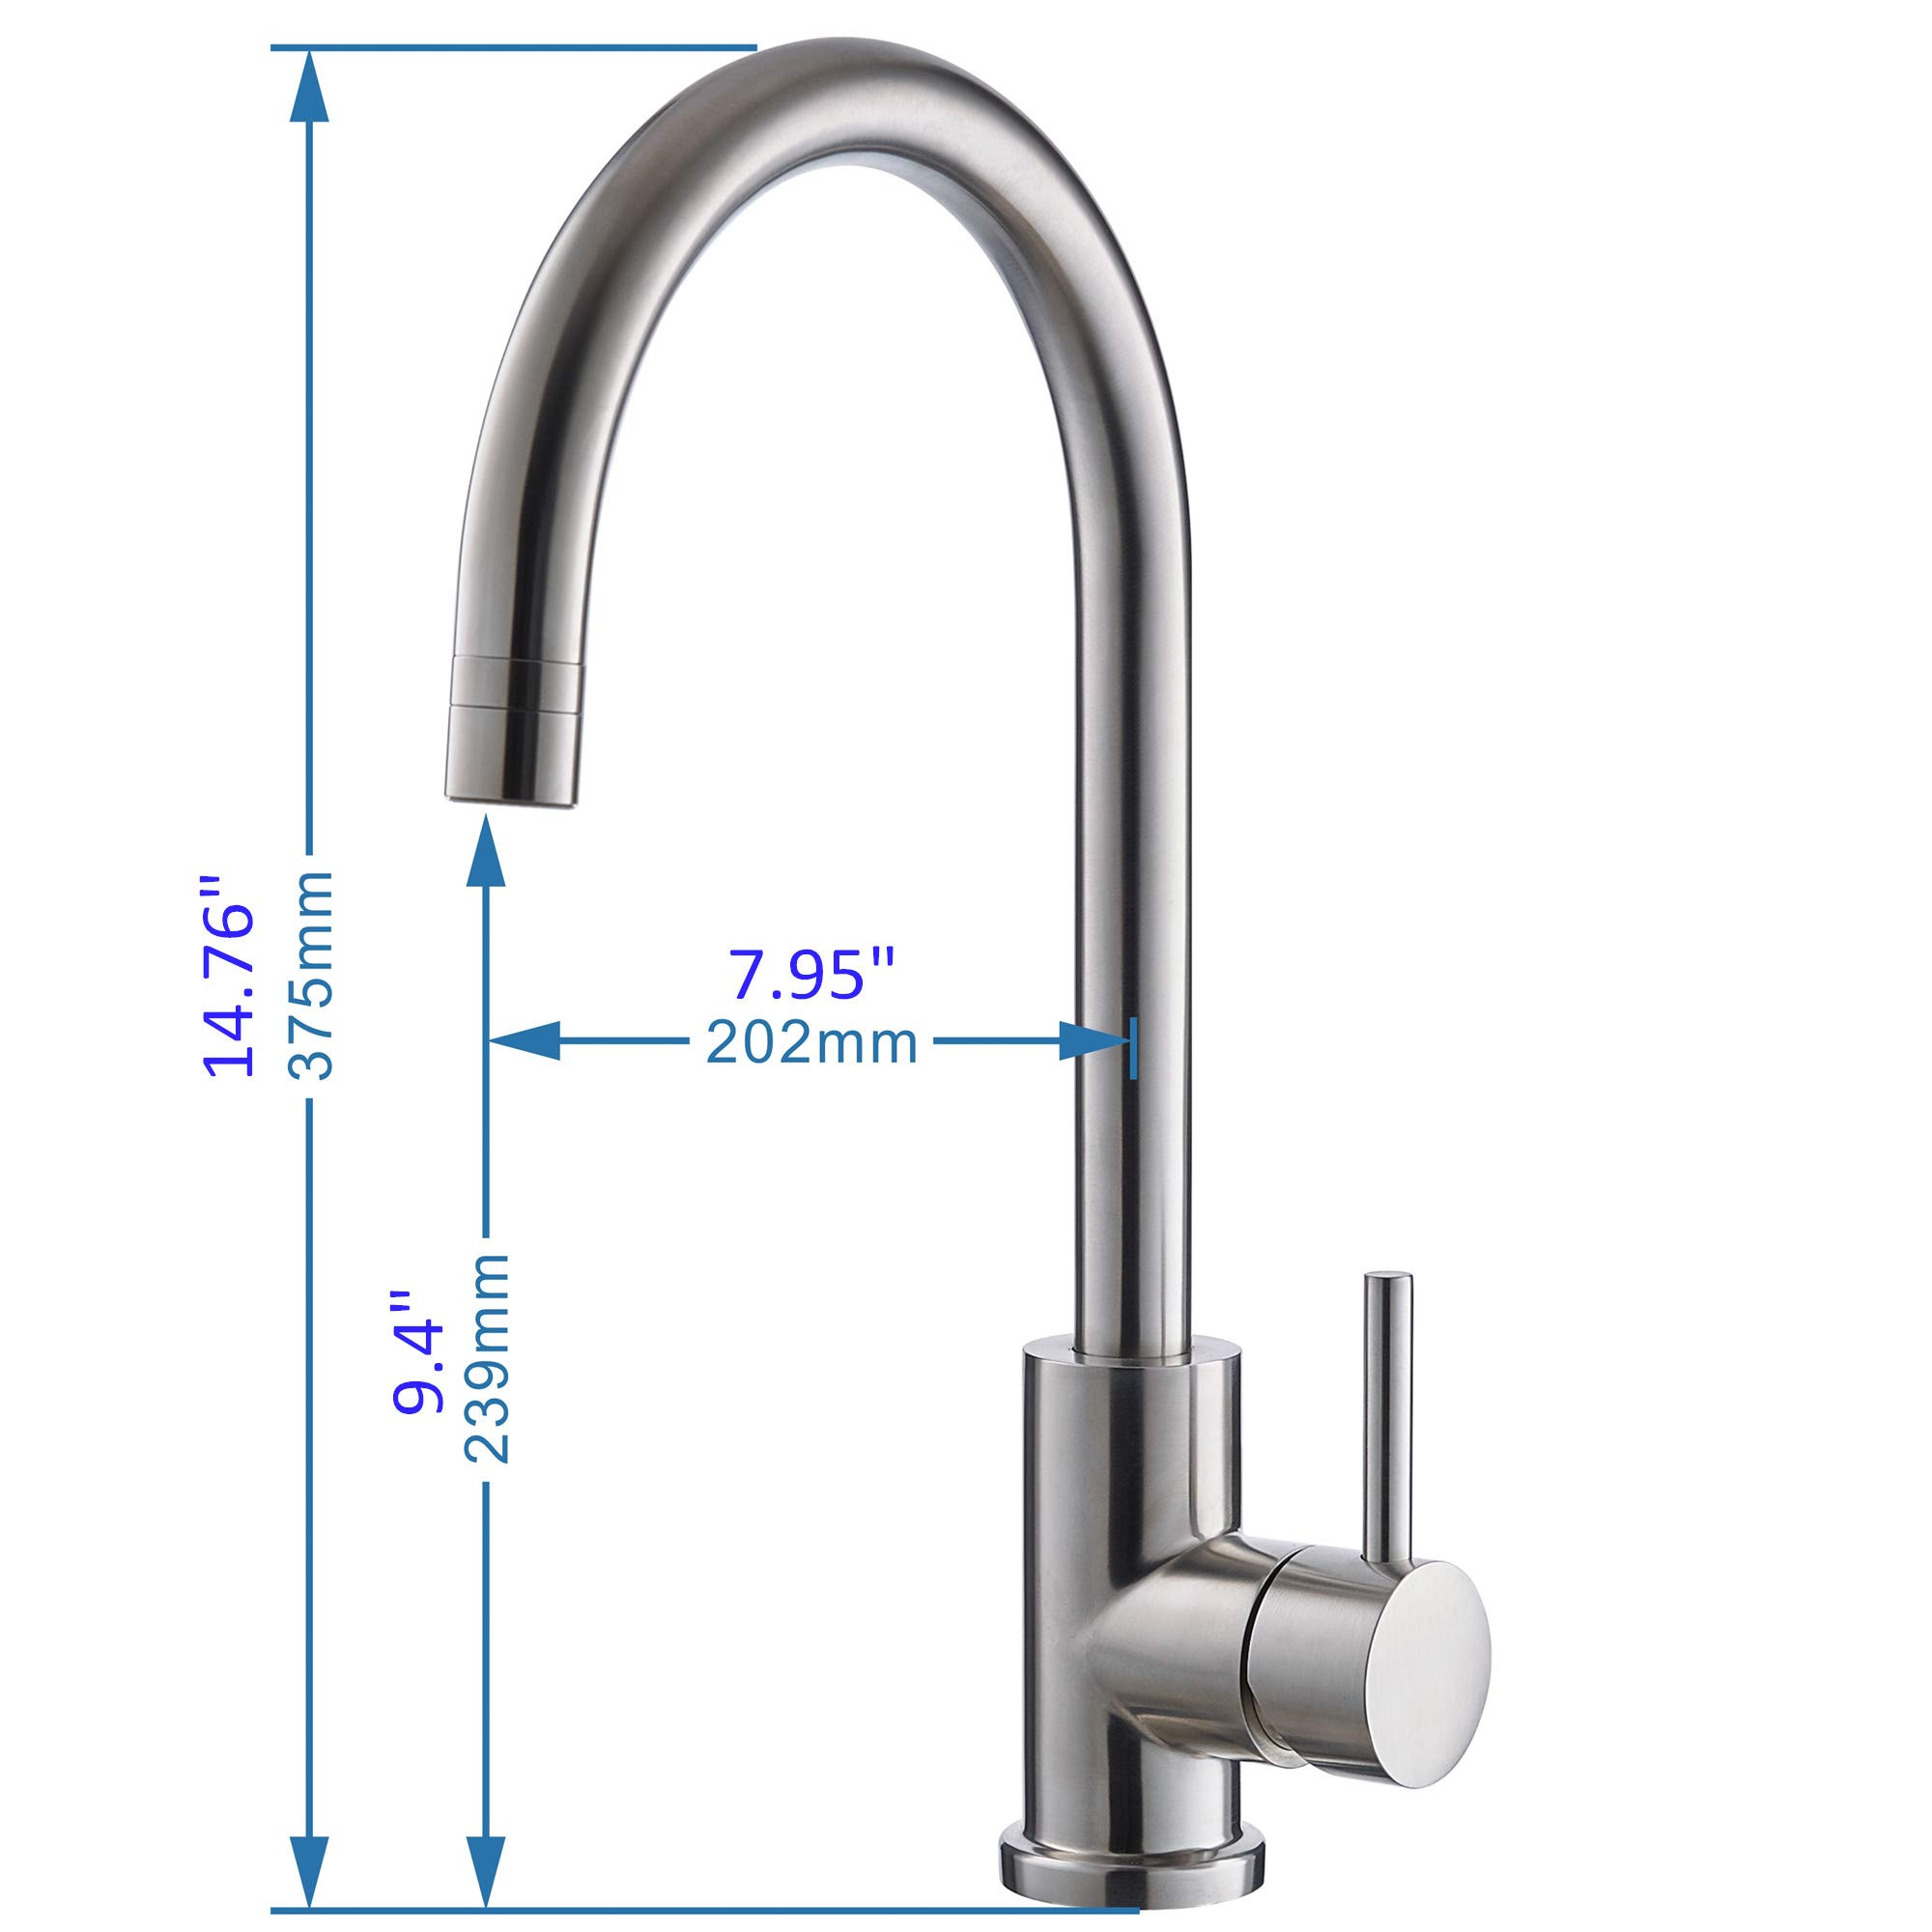 Trywell T304 Solid Stainless Steel Kitchen Sink Faucet, High Arc Single Lever Bar Faucet with Two-function Nozzle,1.8 Gpm by Trywell (Image #5)